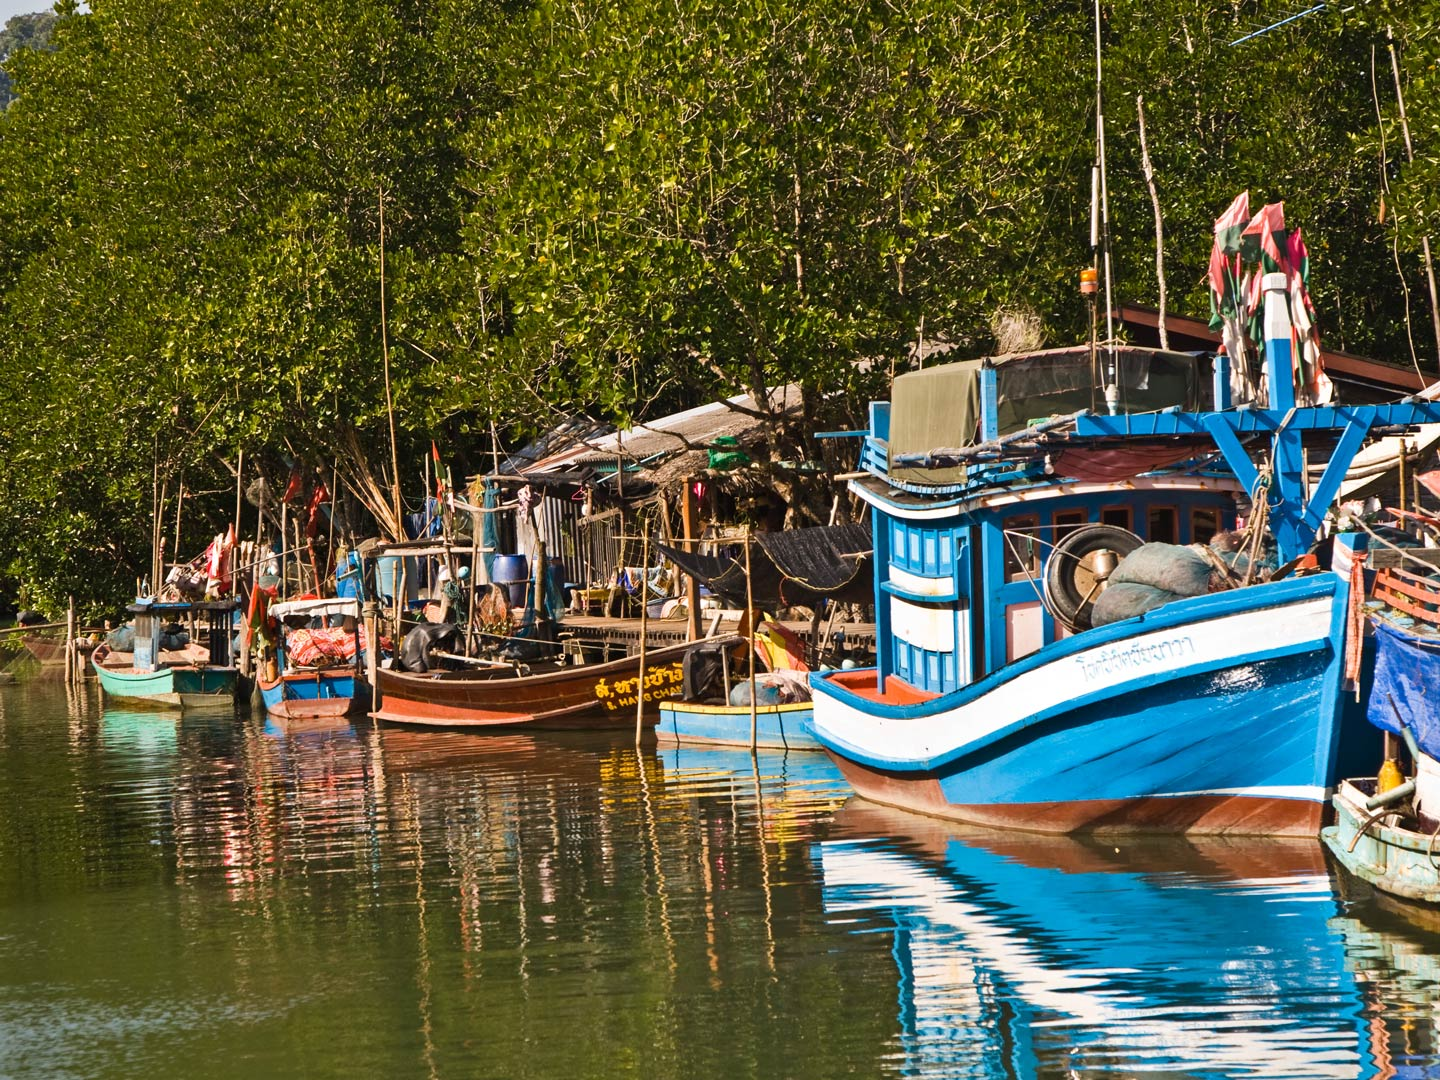 Huts and colorful fishing boats in the mangroves of the Everglades, Florida